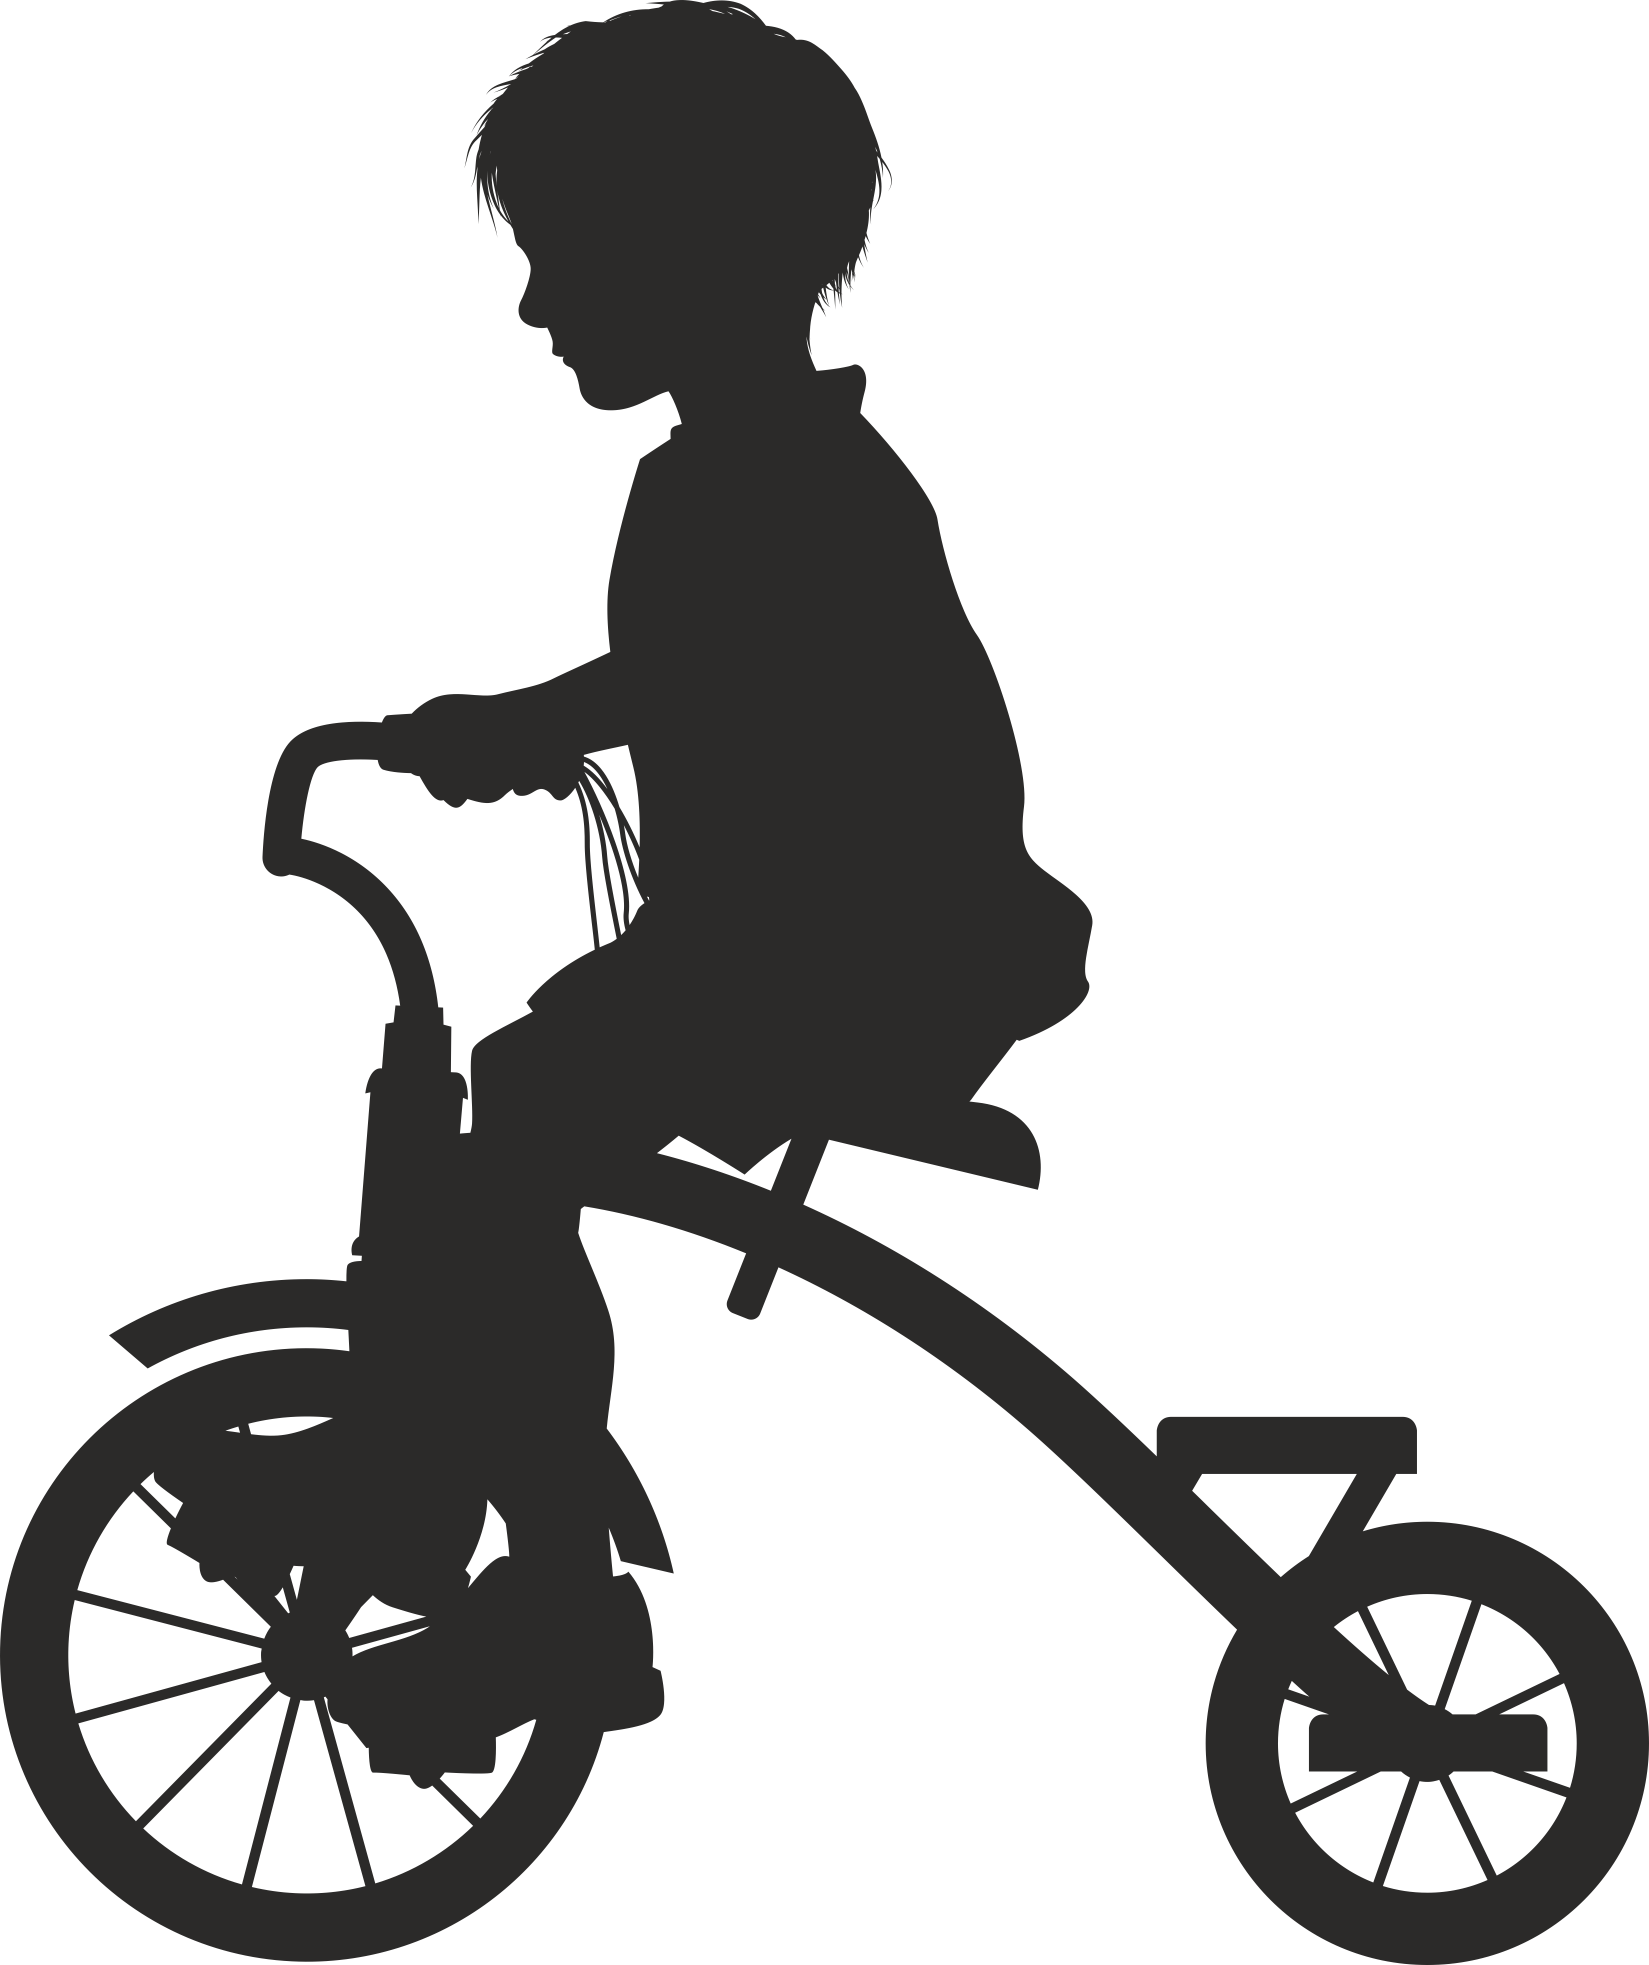 Silhouette Cyclist Collection Of Bicycle 20 Free DXF File